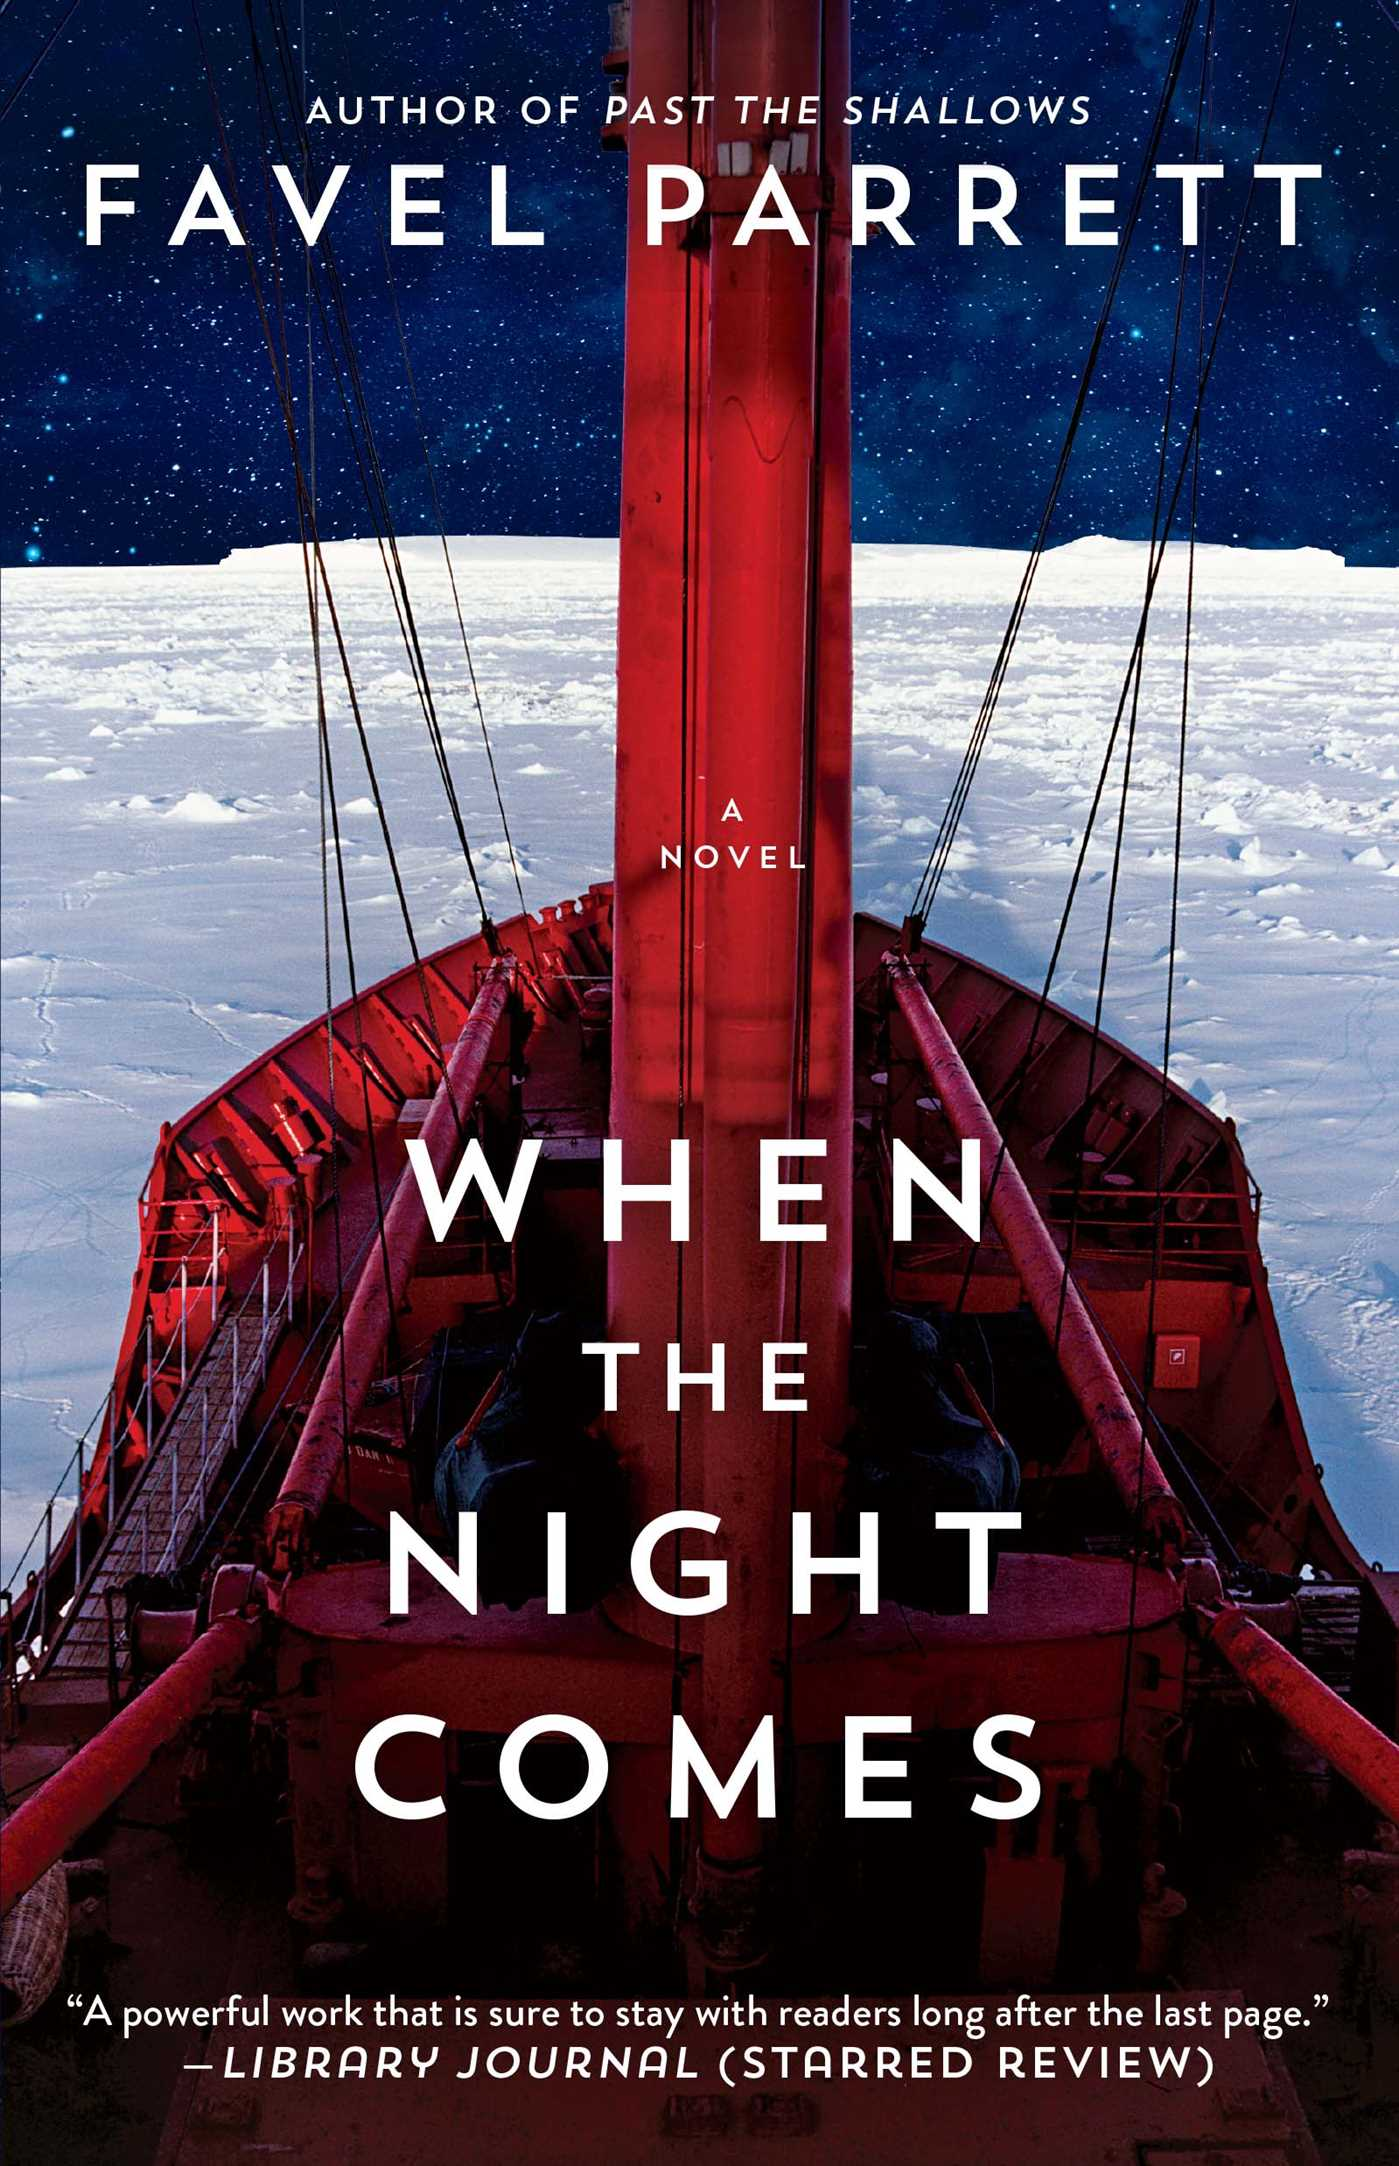 When the night comes 9781476754901 hr